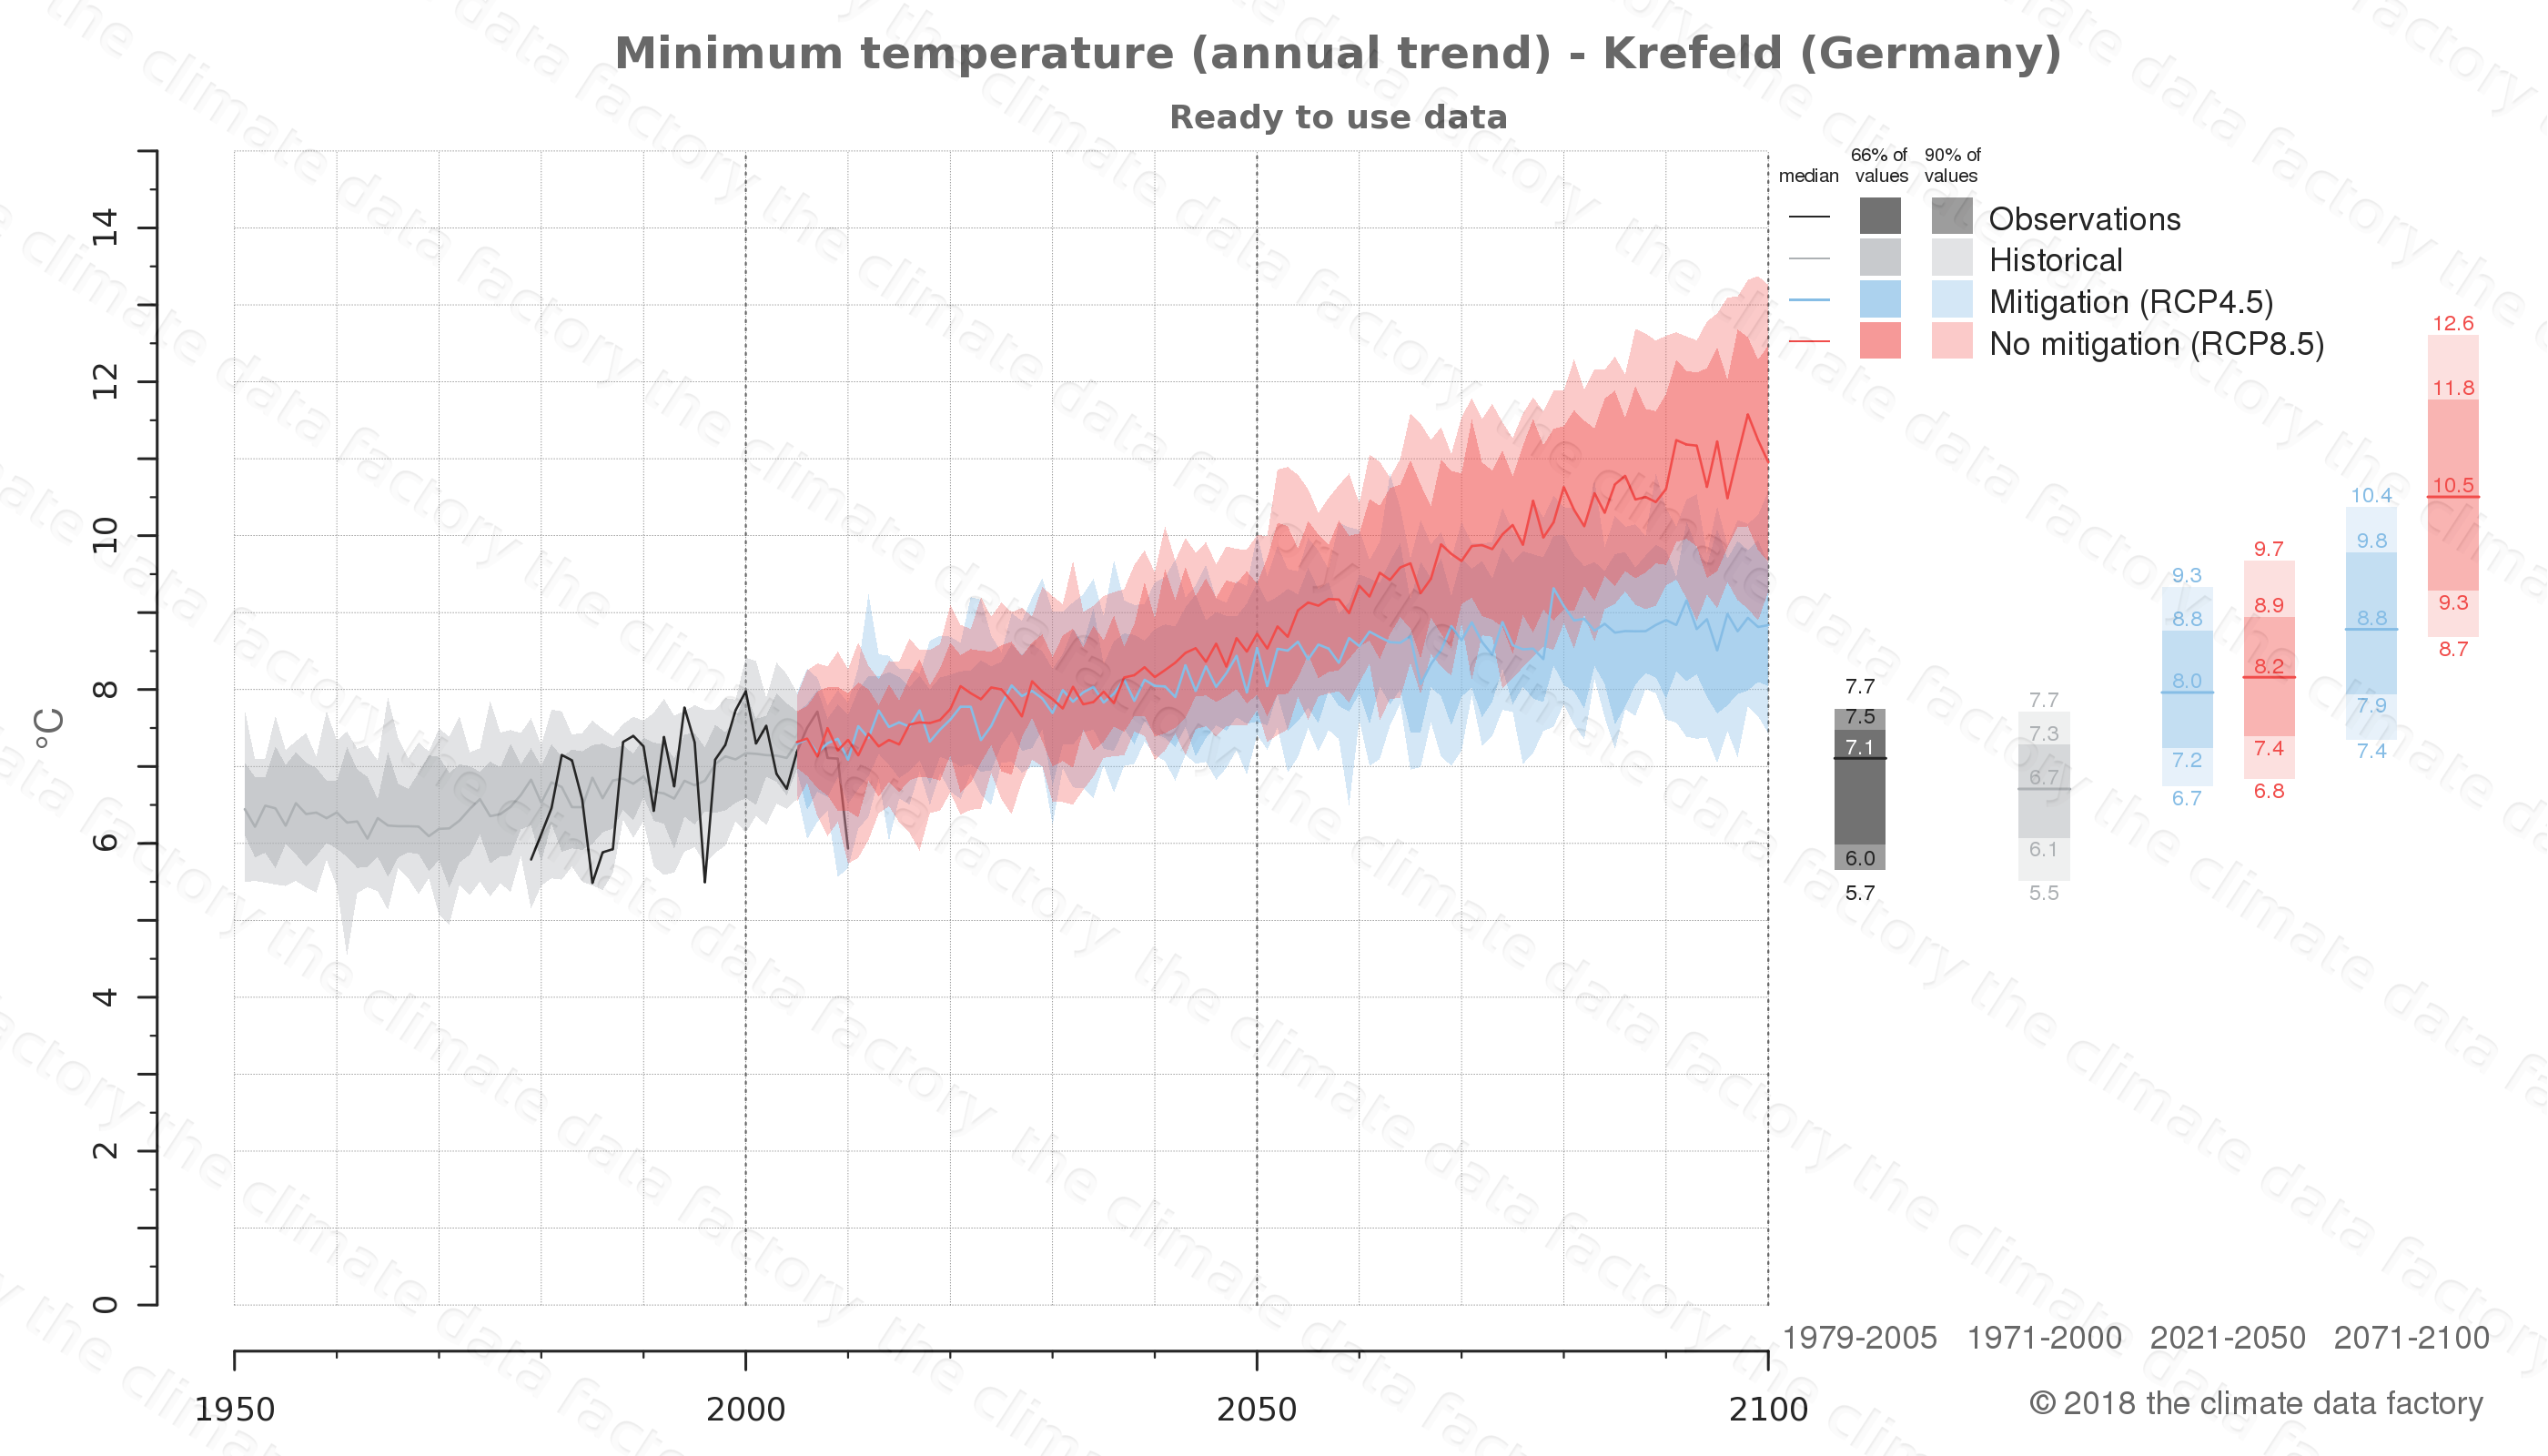 climate change data policy adaptation climate graph city data minimum-temperature krefeld germany